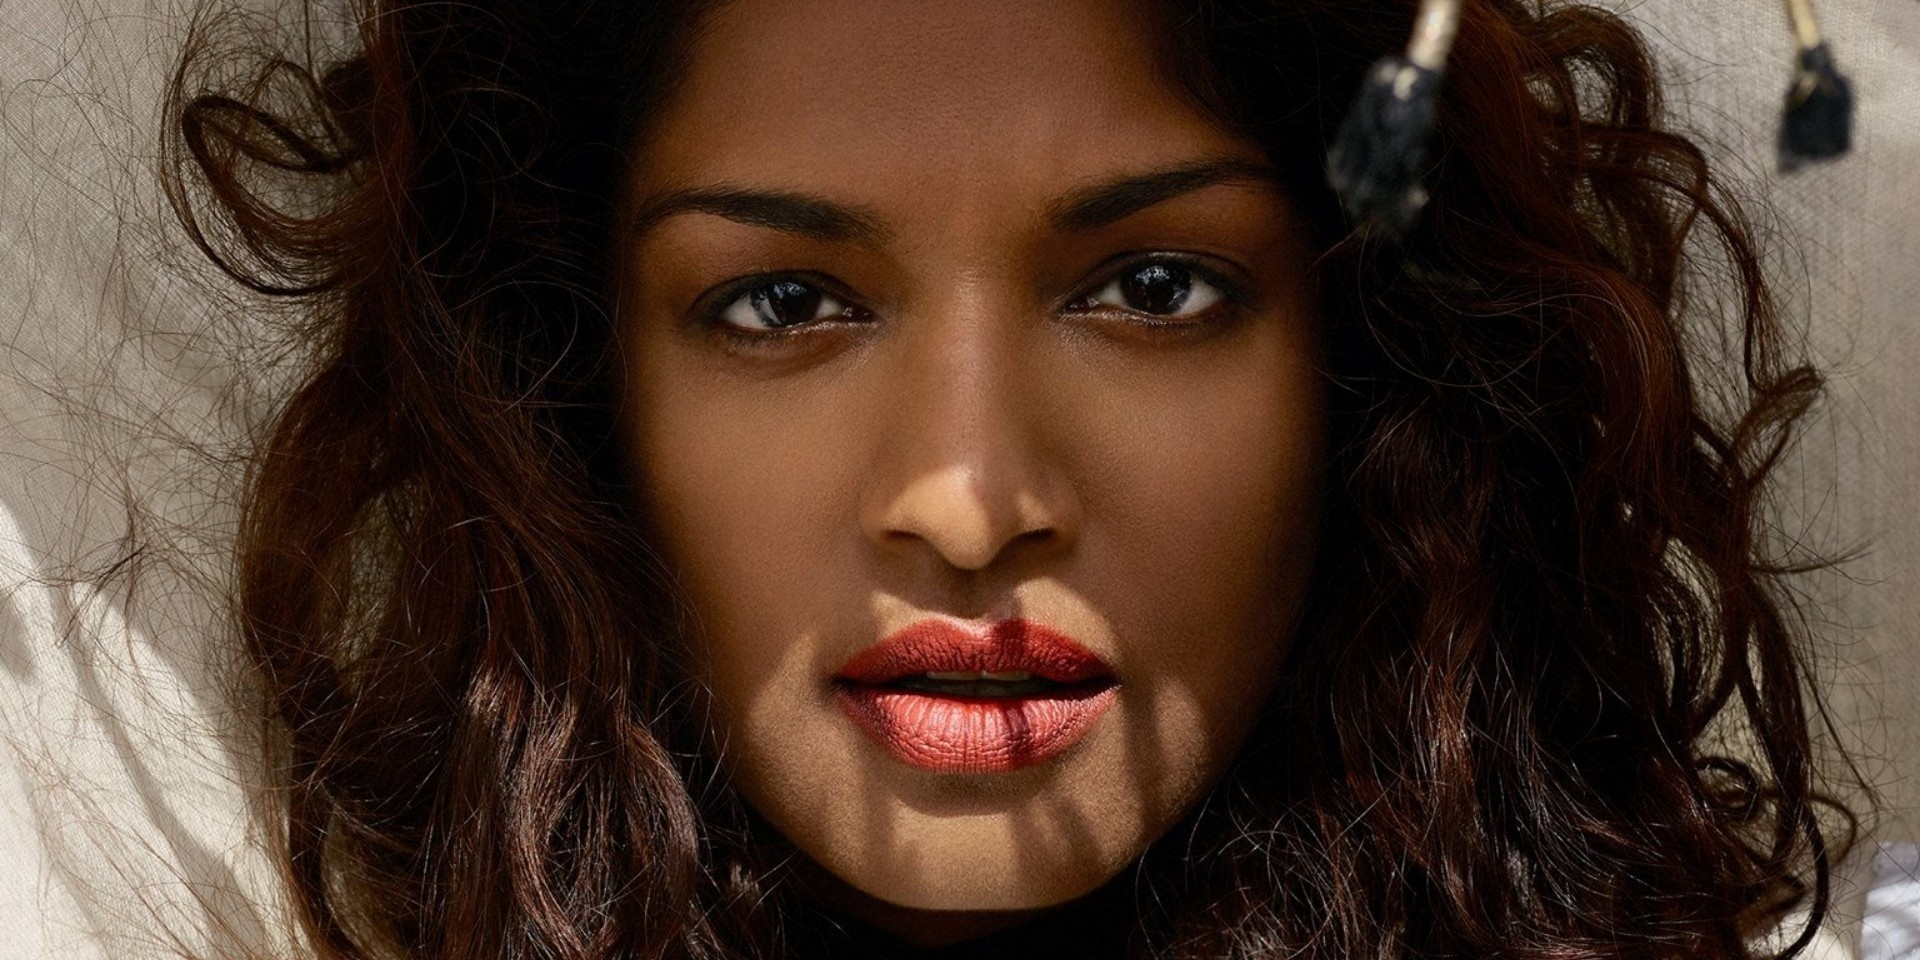 M.I.A. hints at quitting music because of censorship